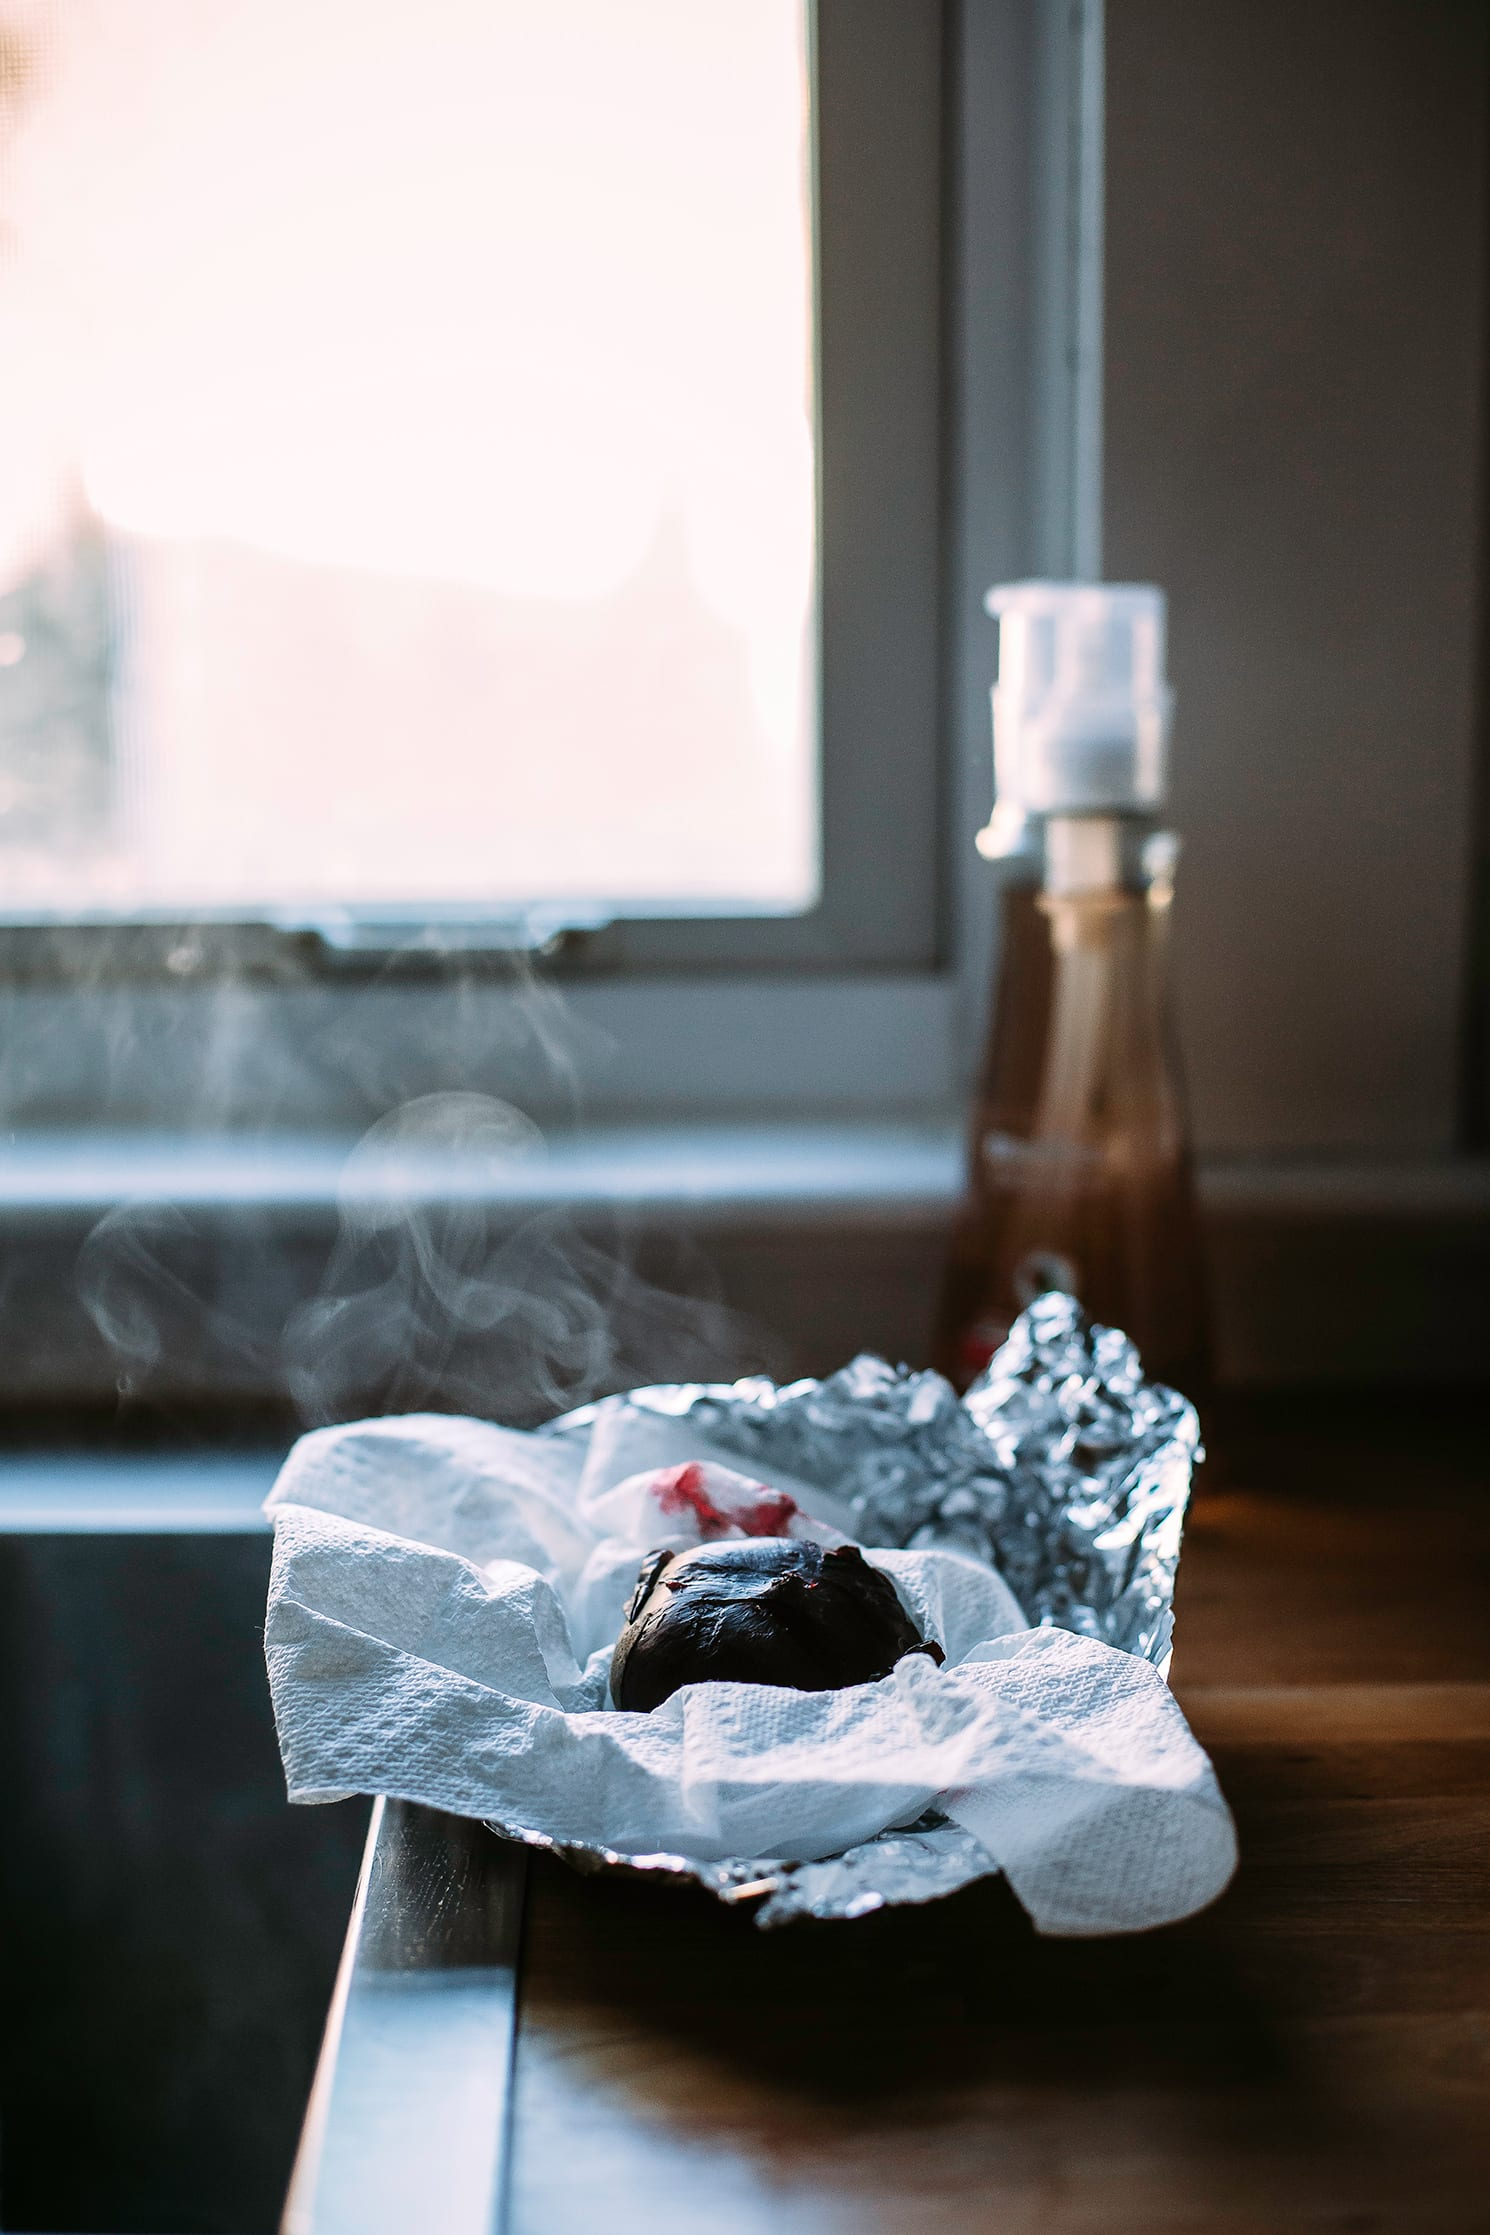 Image shows a freshly roasted beet on a kitchen counter, wrapped partially in foil and steaming.